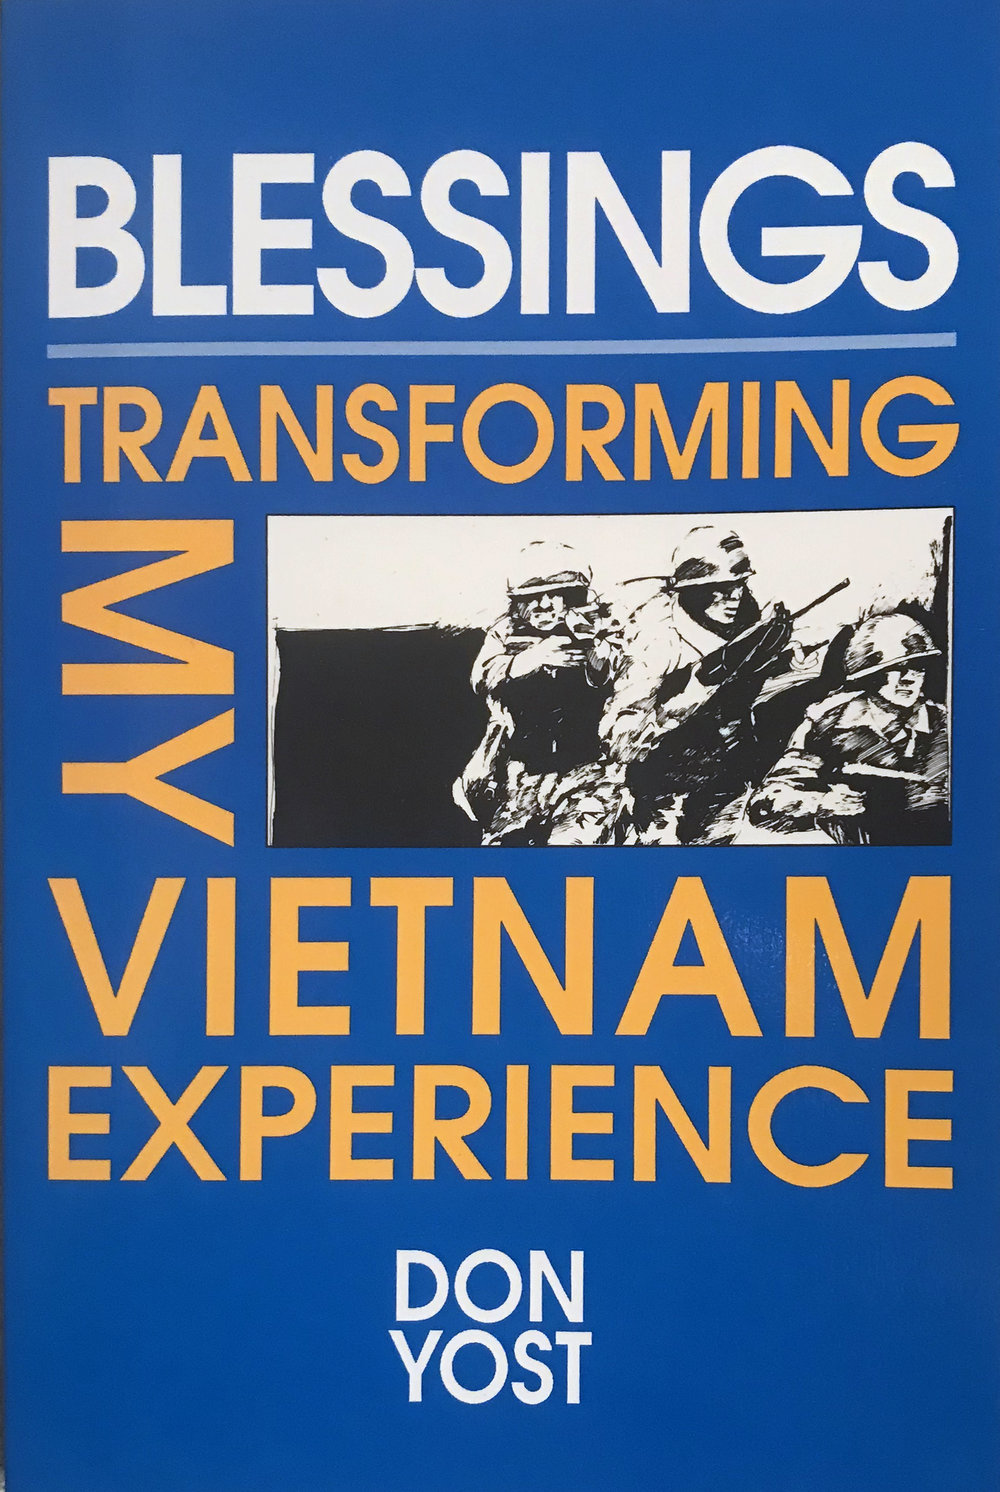 Viet Blessings.jpg